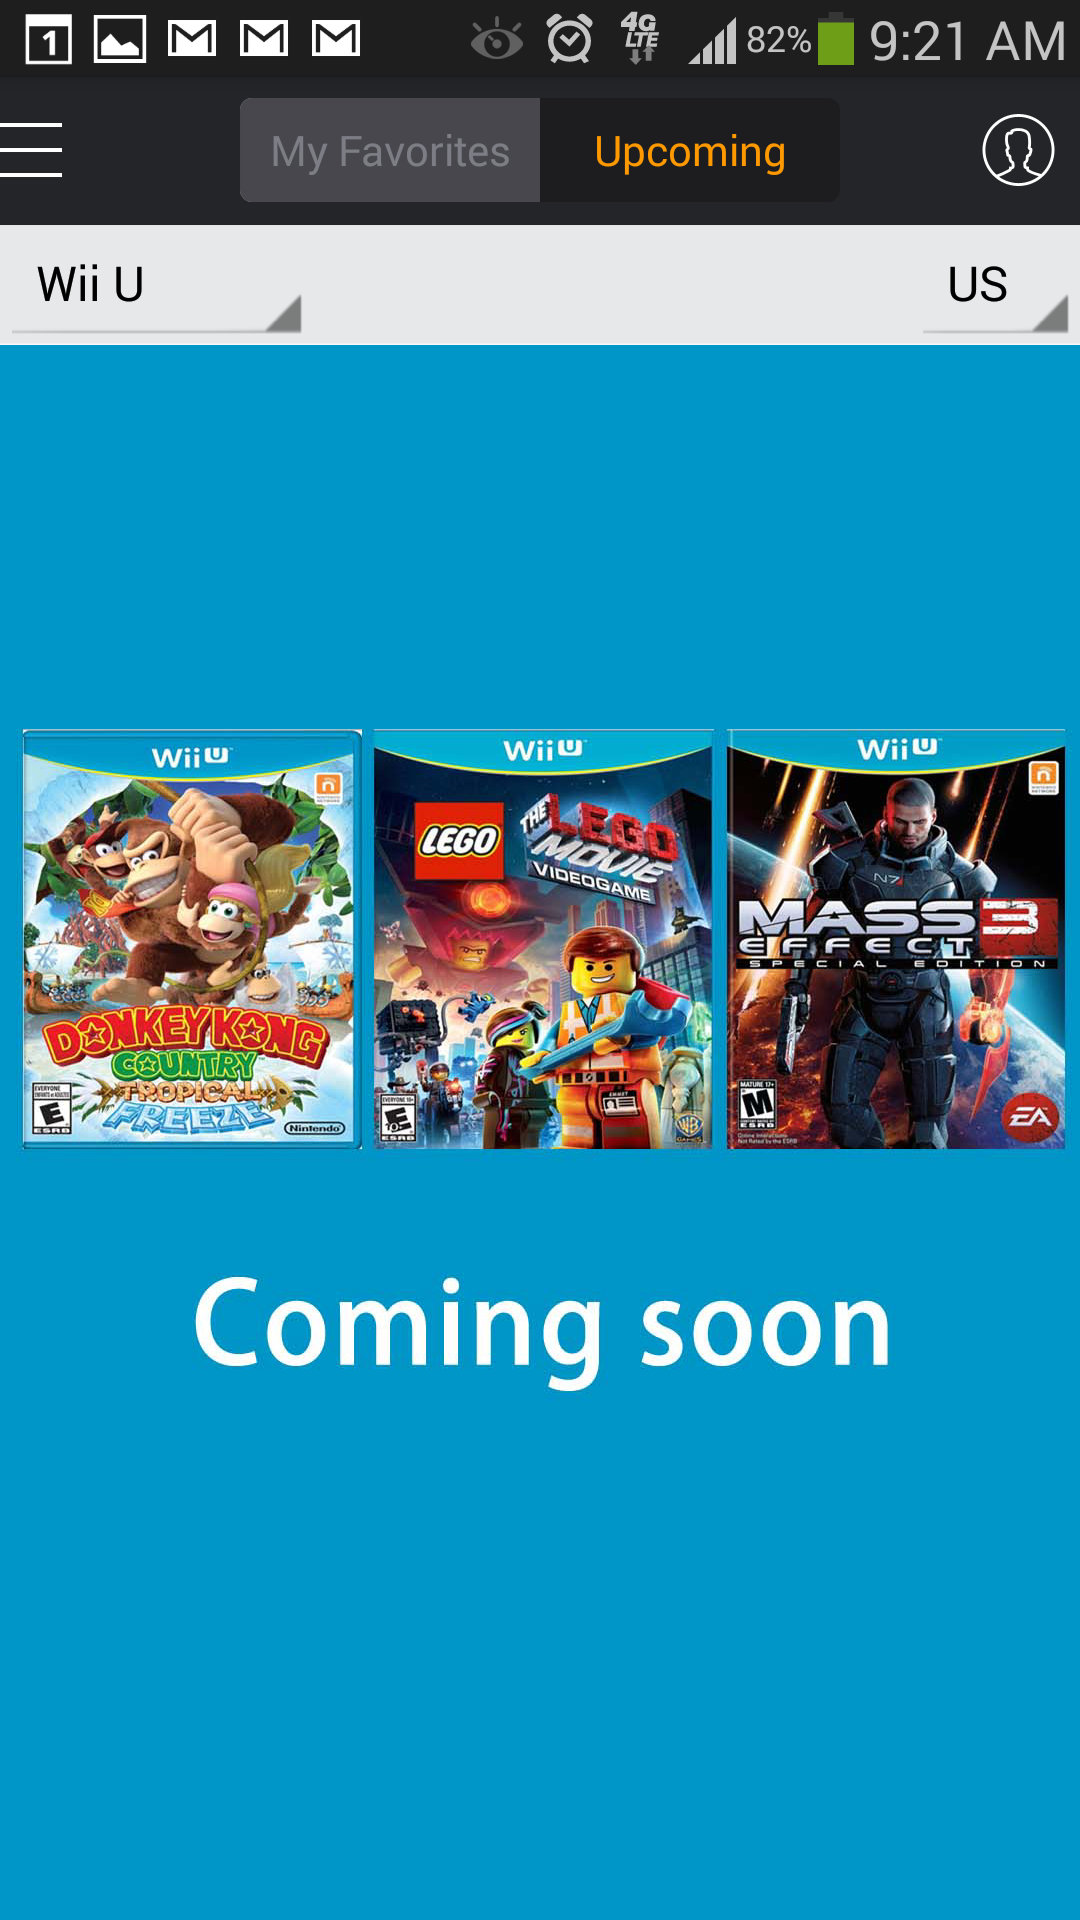 Wii u games coming soon